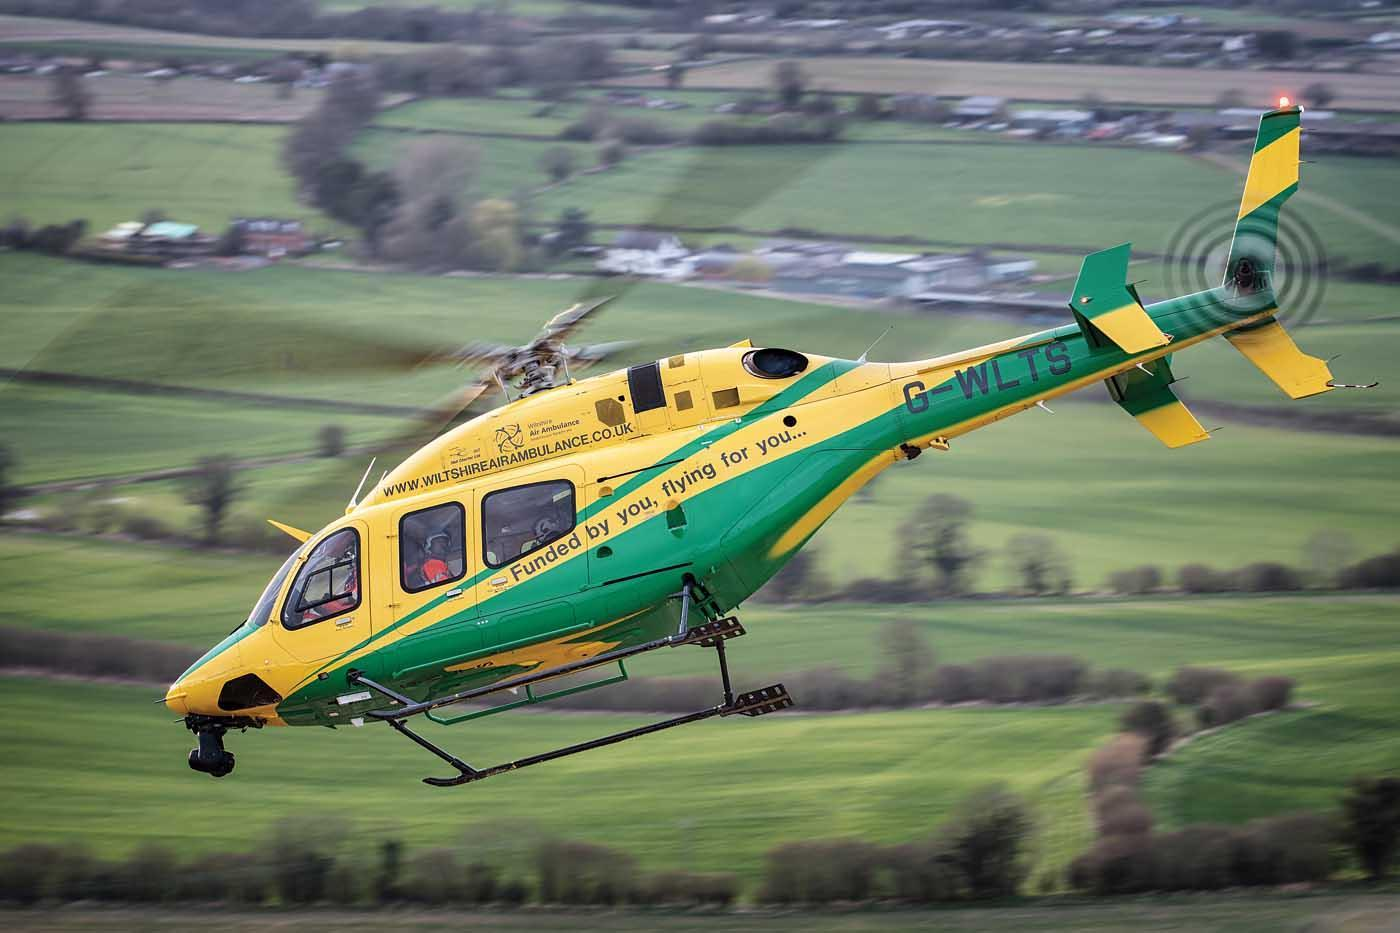 Wiltshire Air Ambulance Bell 429 helicopter